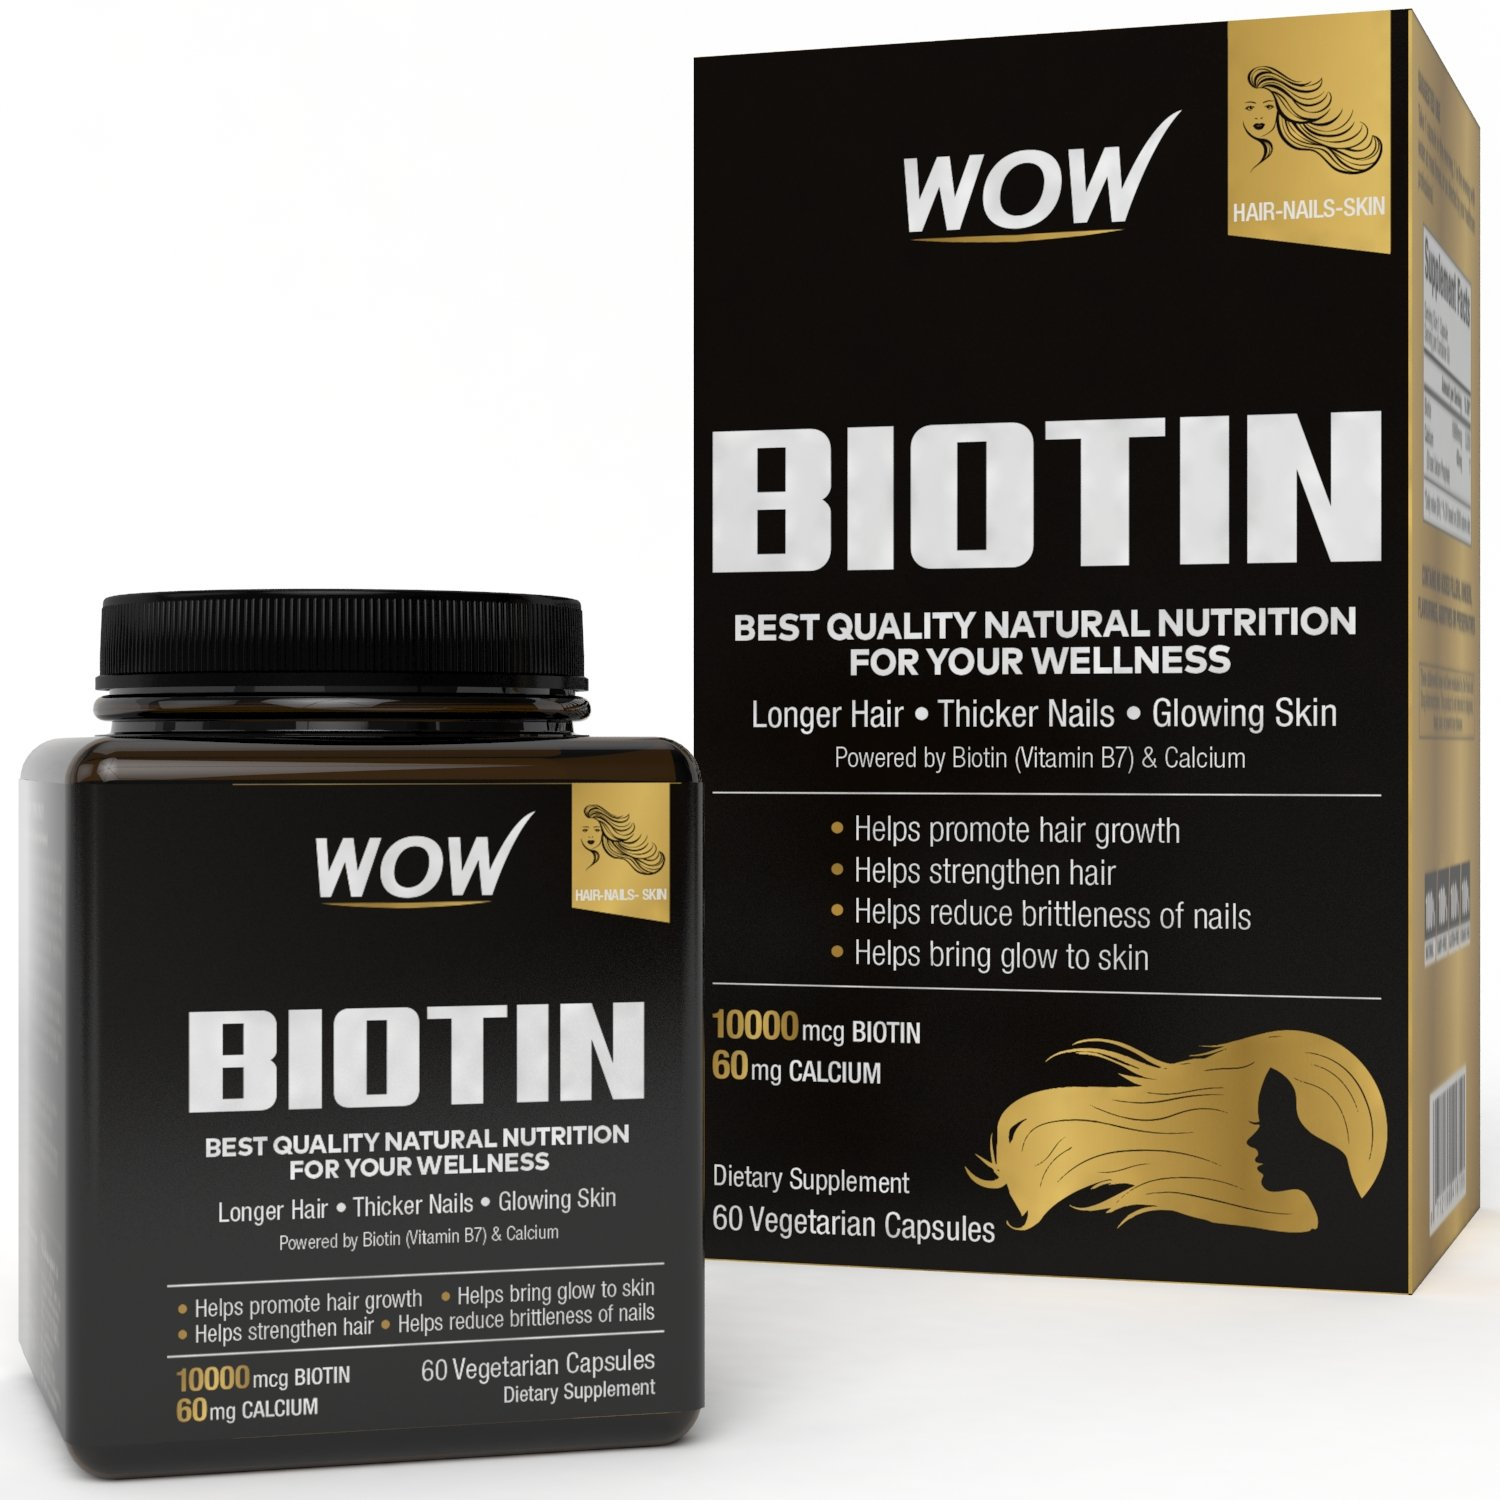 WOW Biotin Maximum Strength 10,000mcg - 60 Vegetarian Capsules